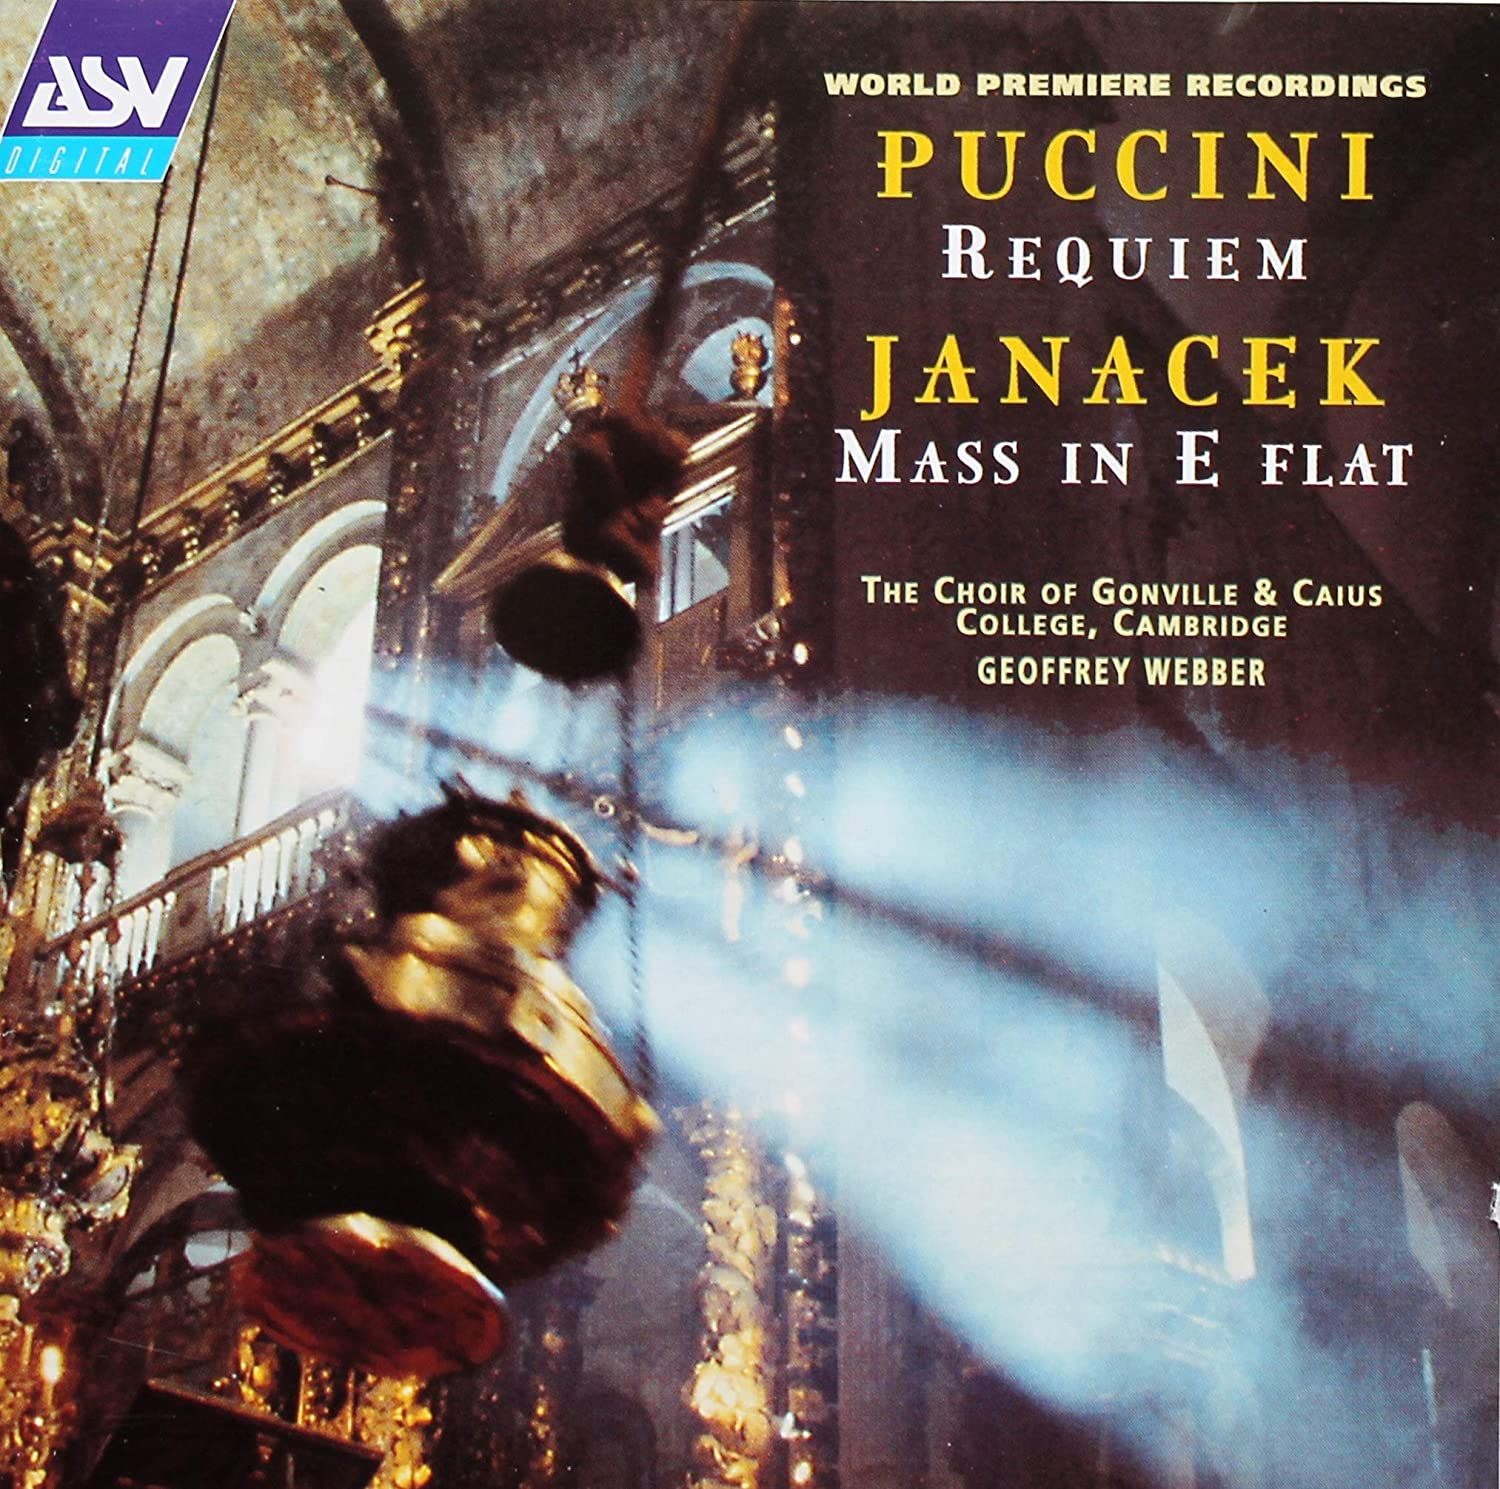 Puccini Janacek: Sacred Choral Works sale Premiere of Max 57% OFF Requiem World